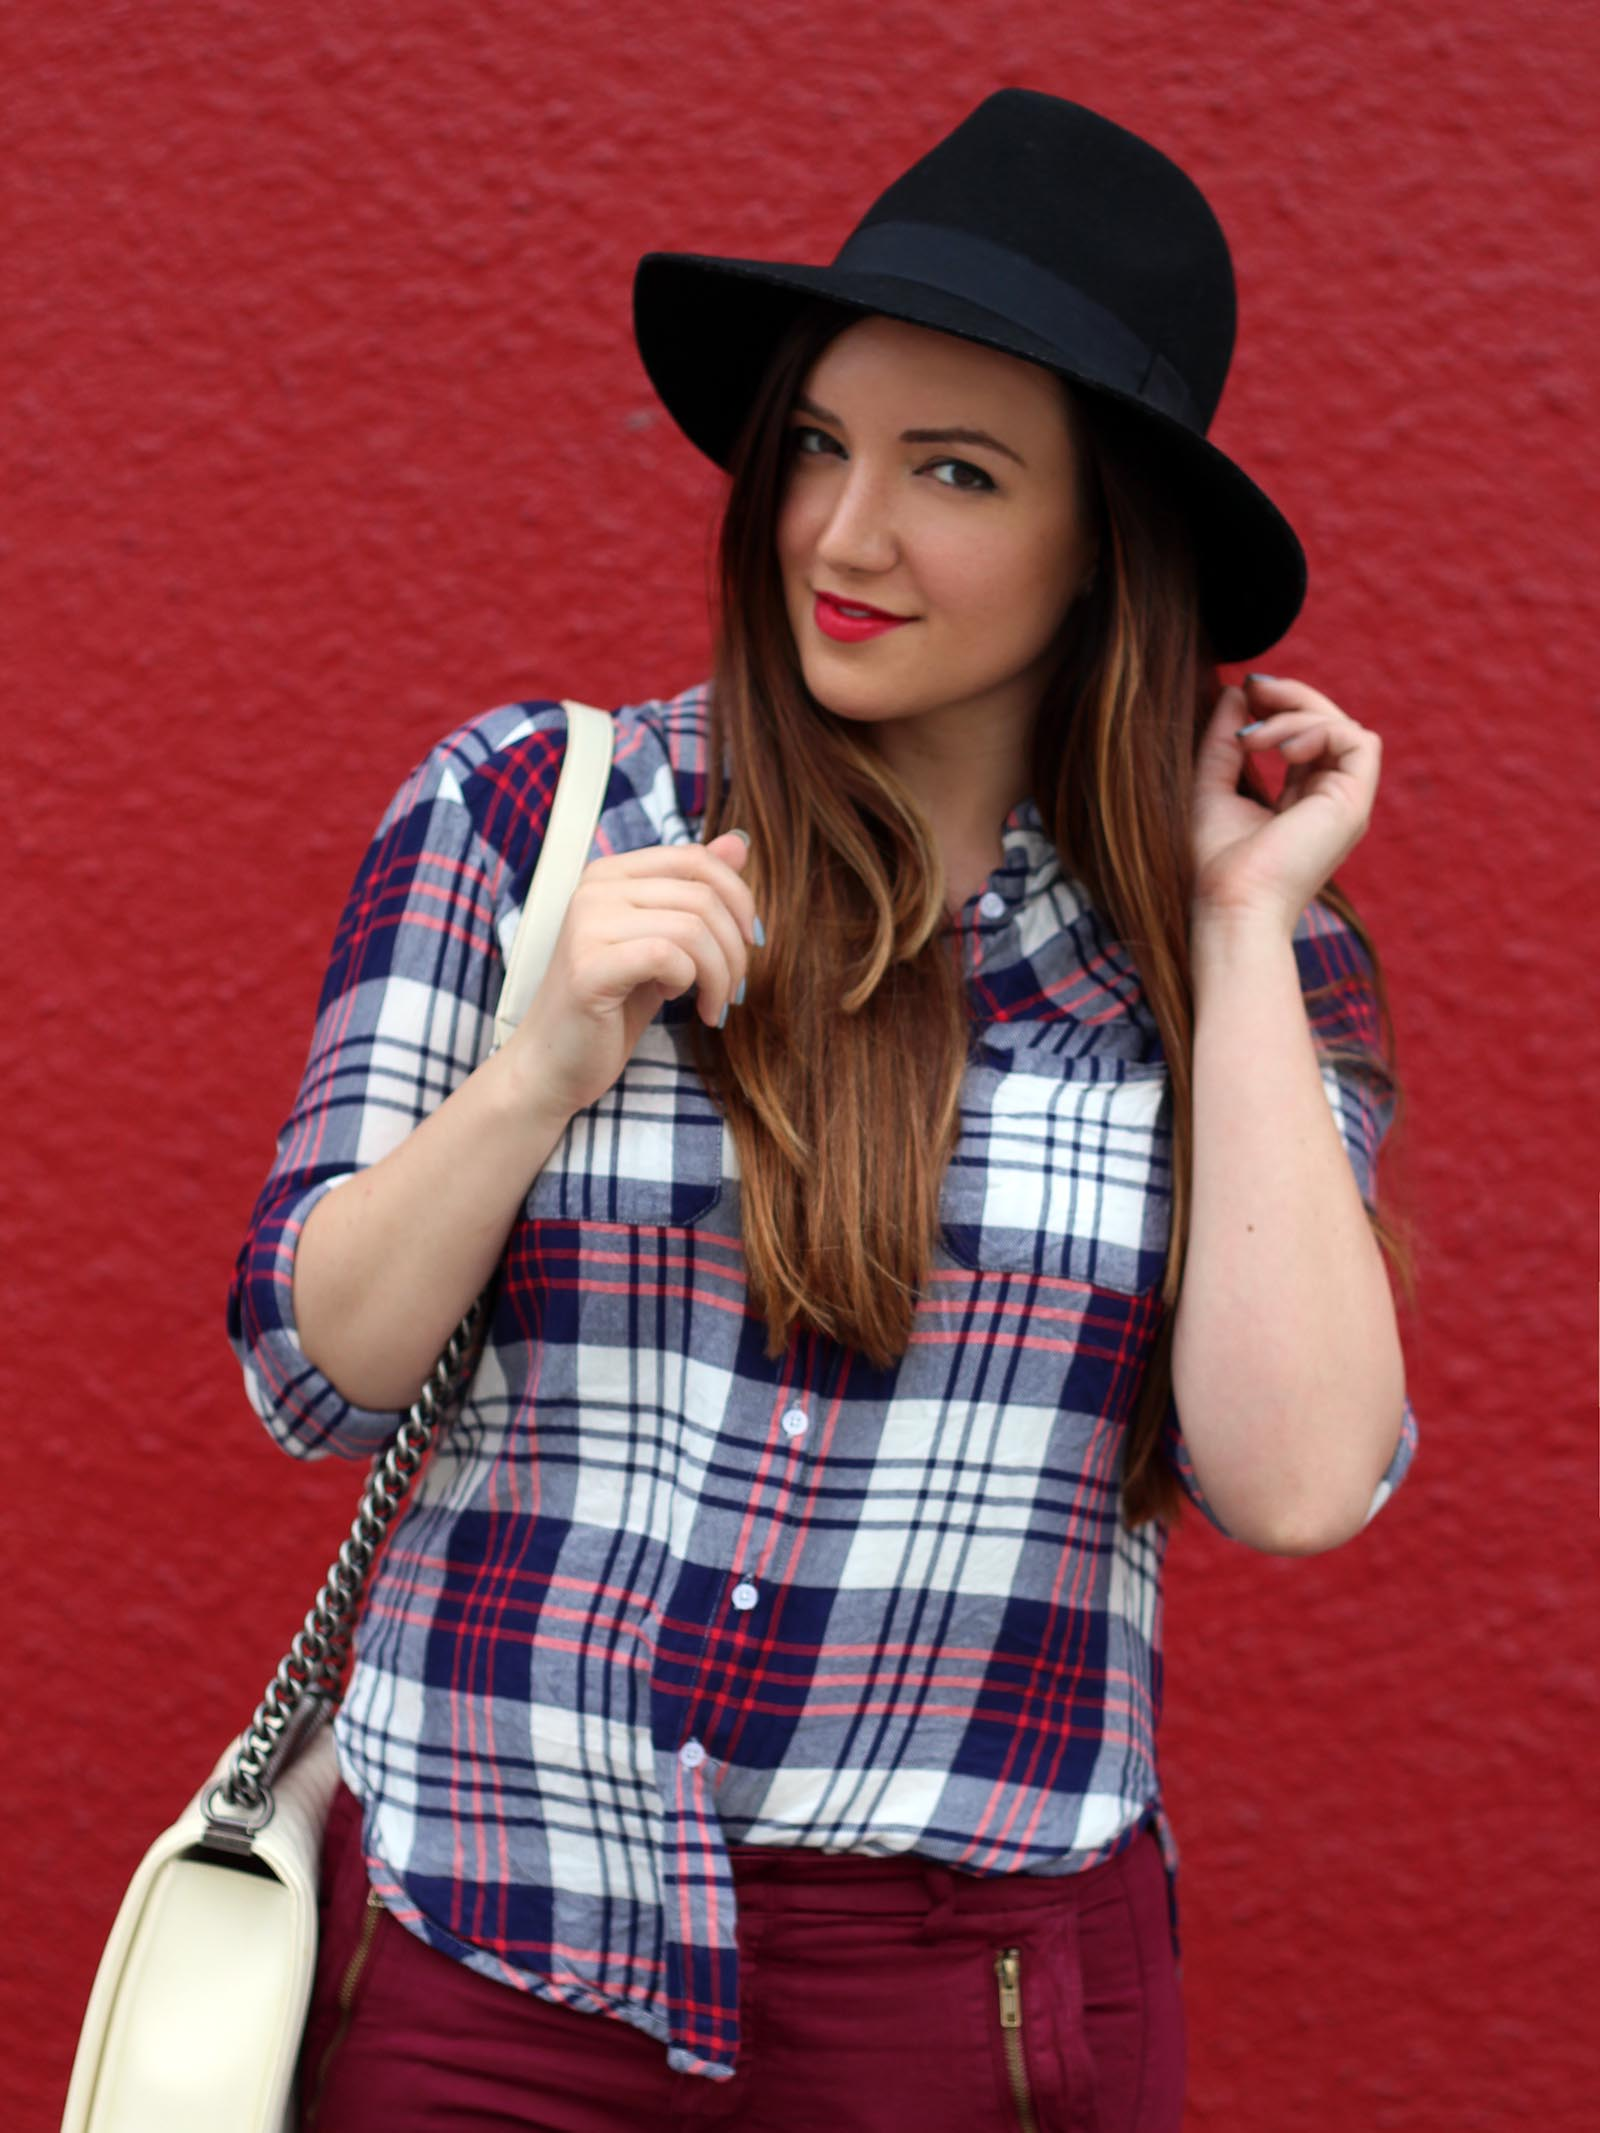 nordstrom plaid shirt